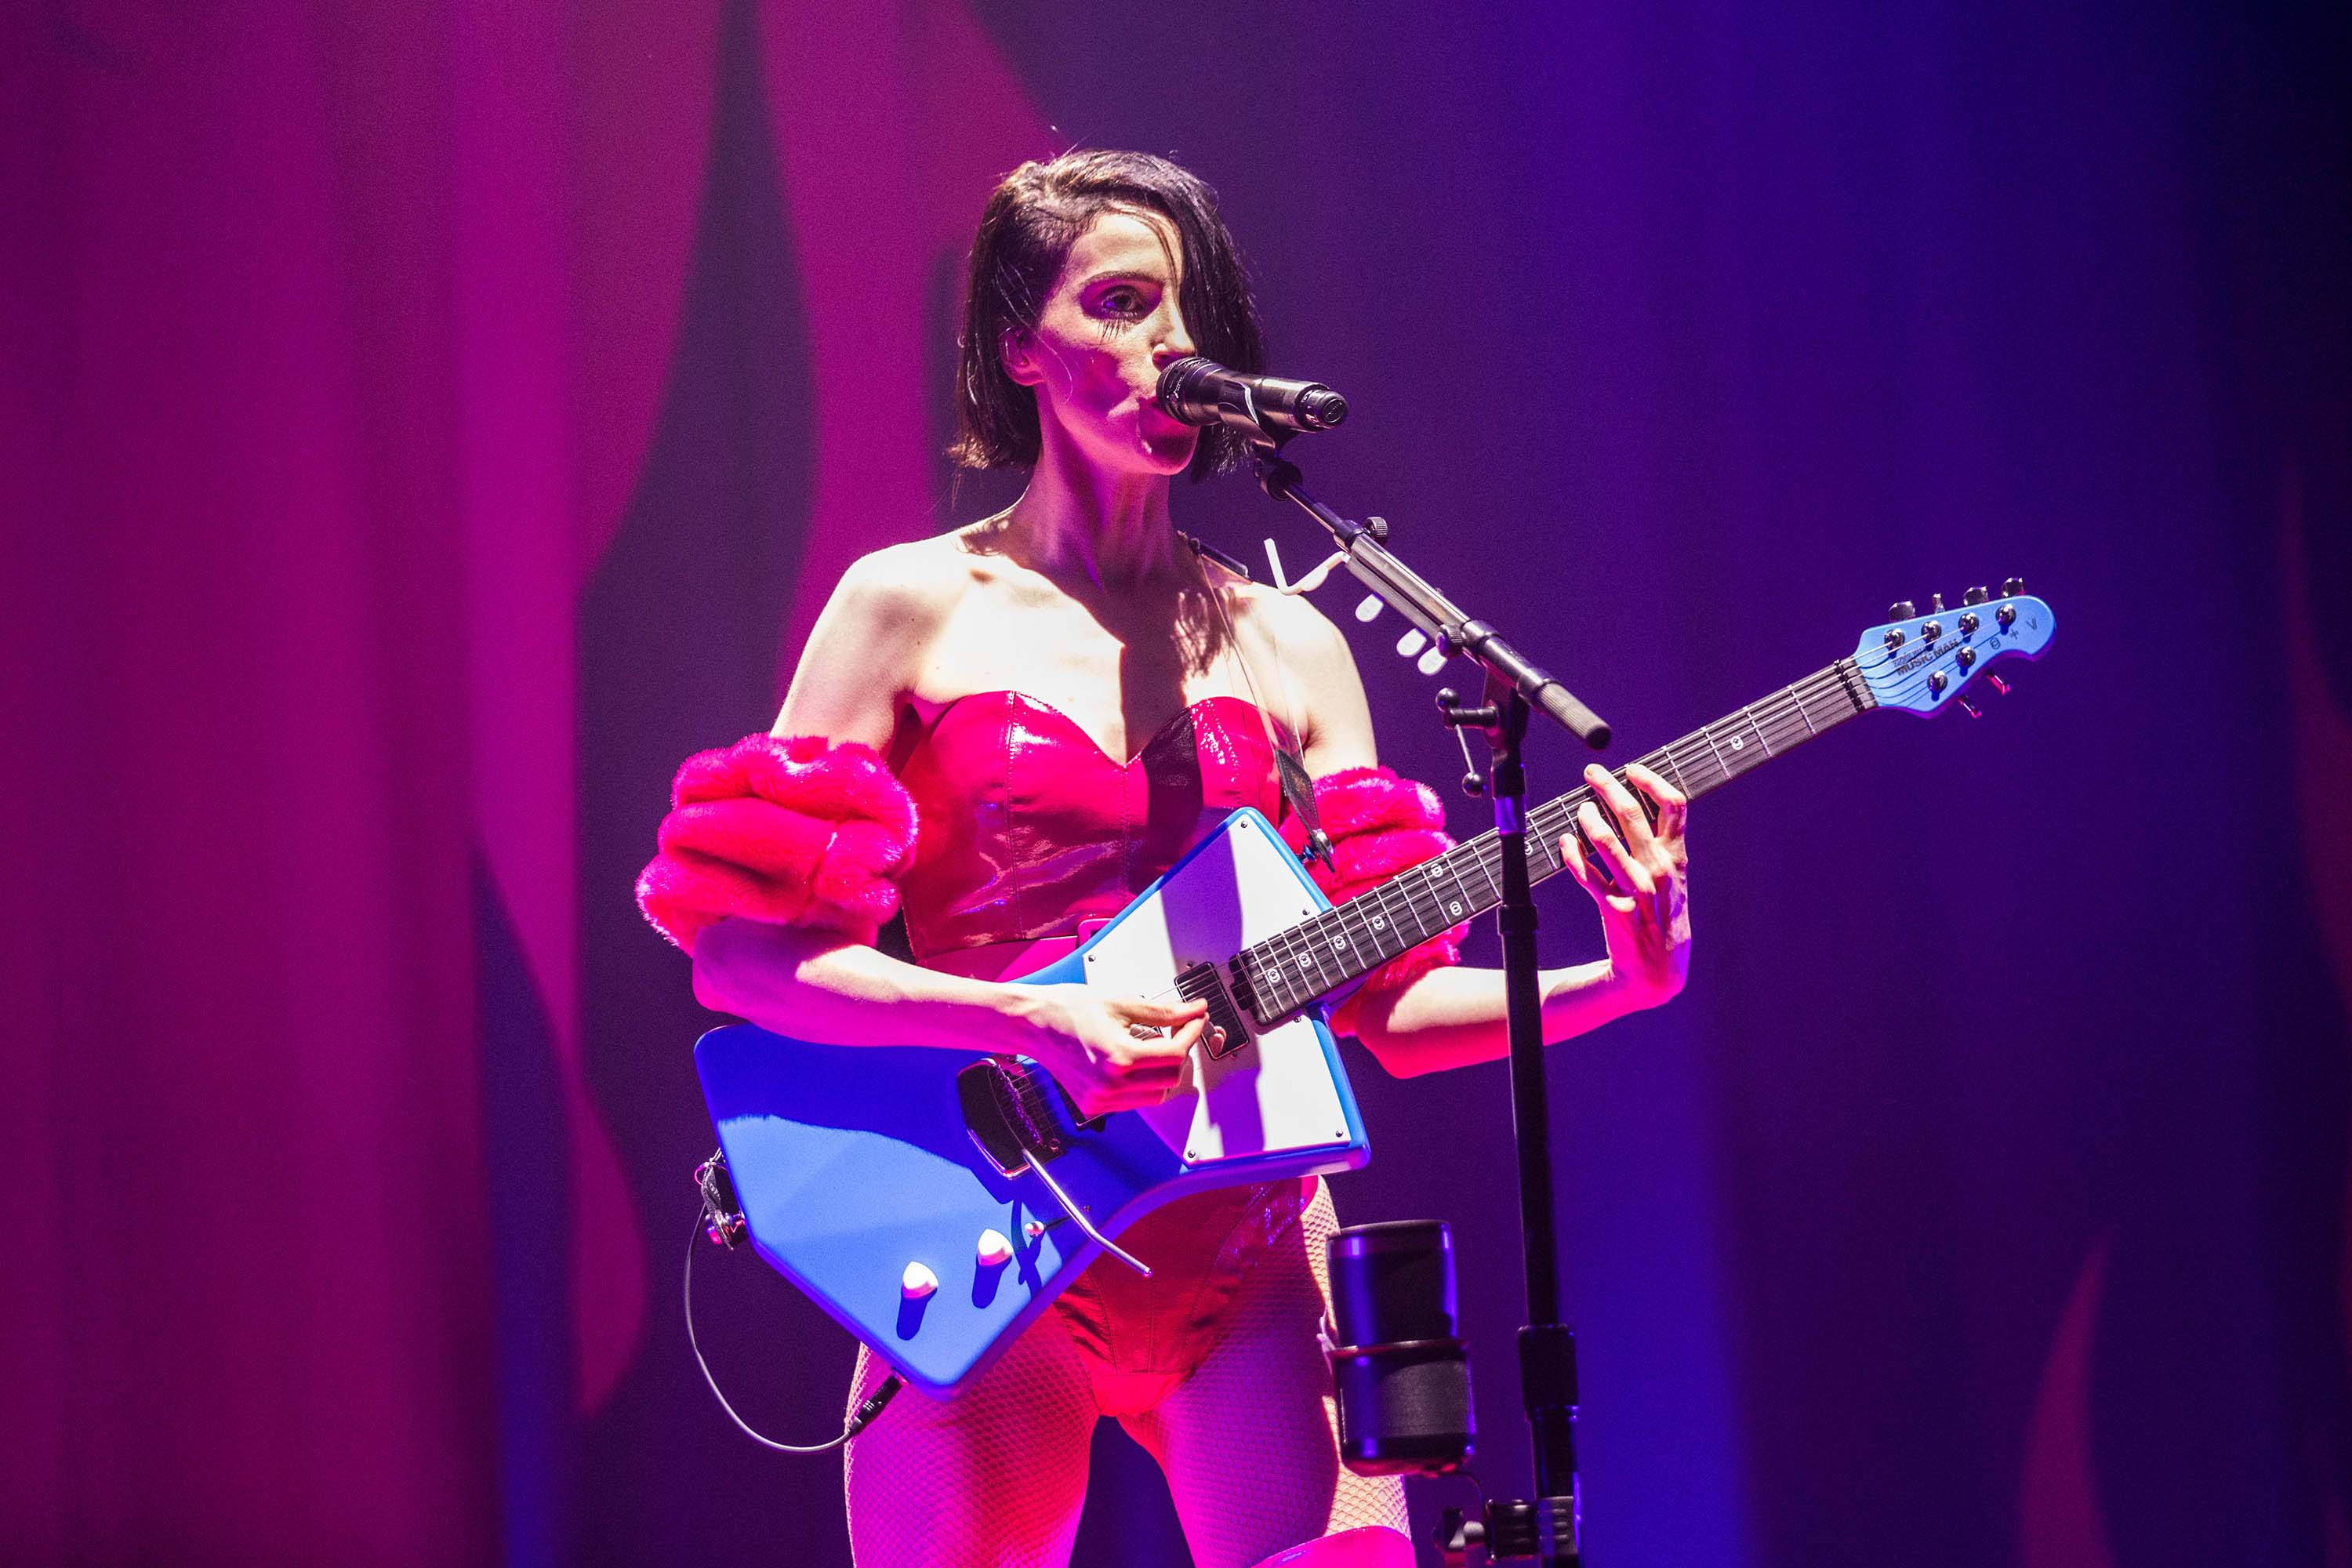 St Vincent set to perform with Dua Lipa at the 2019 Grammys